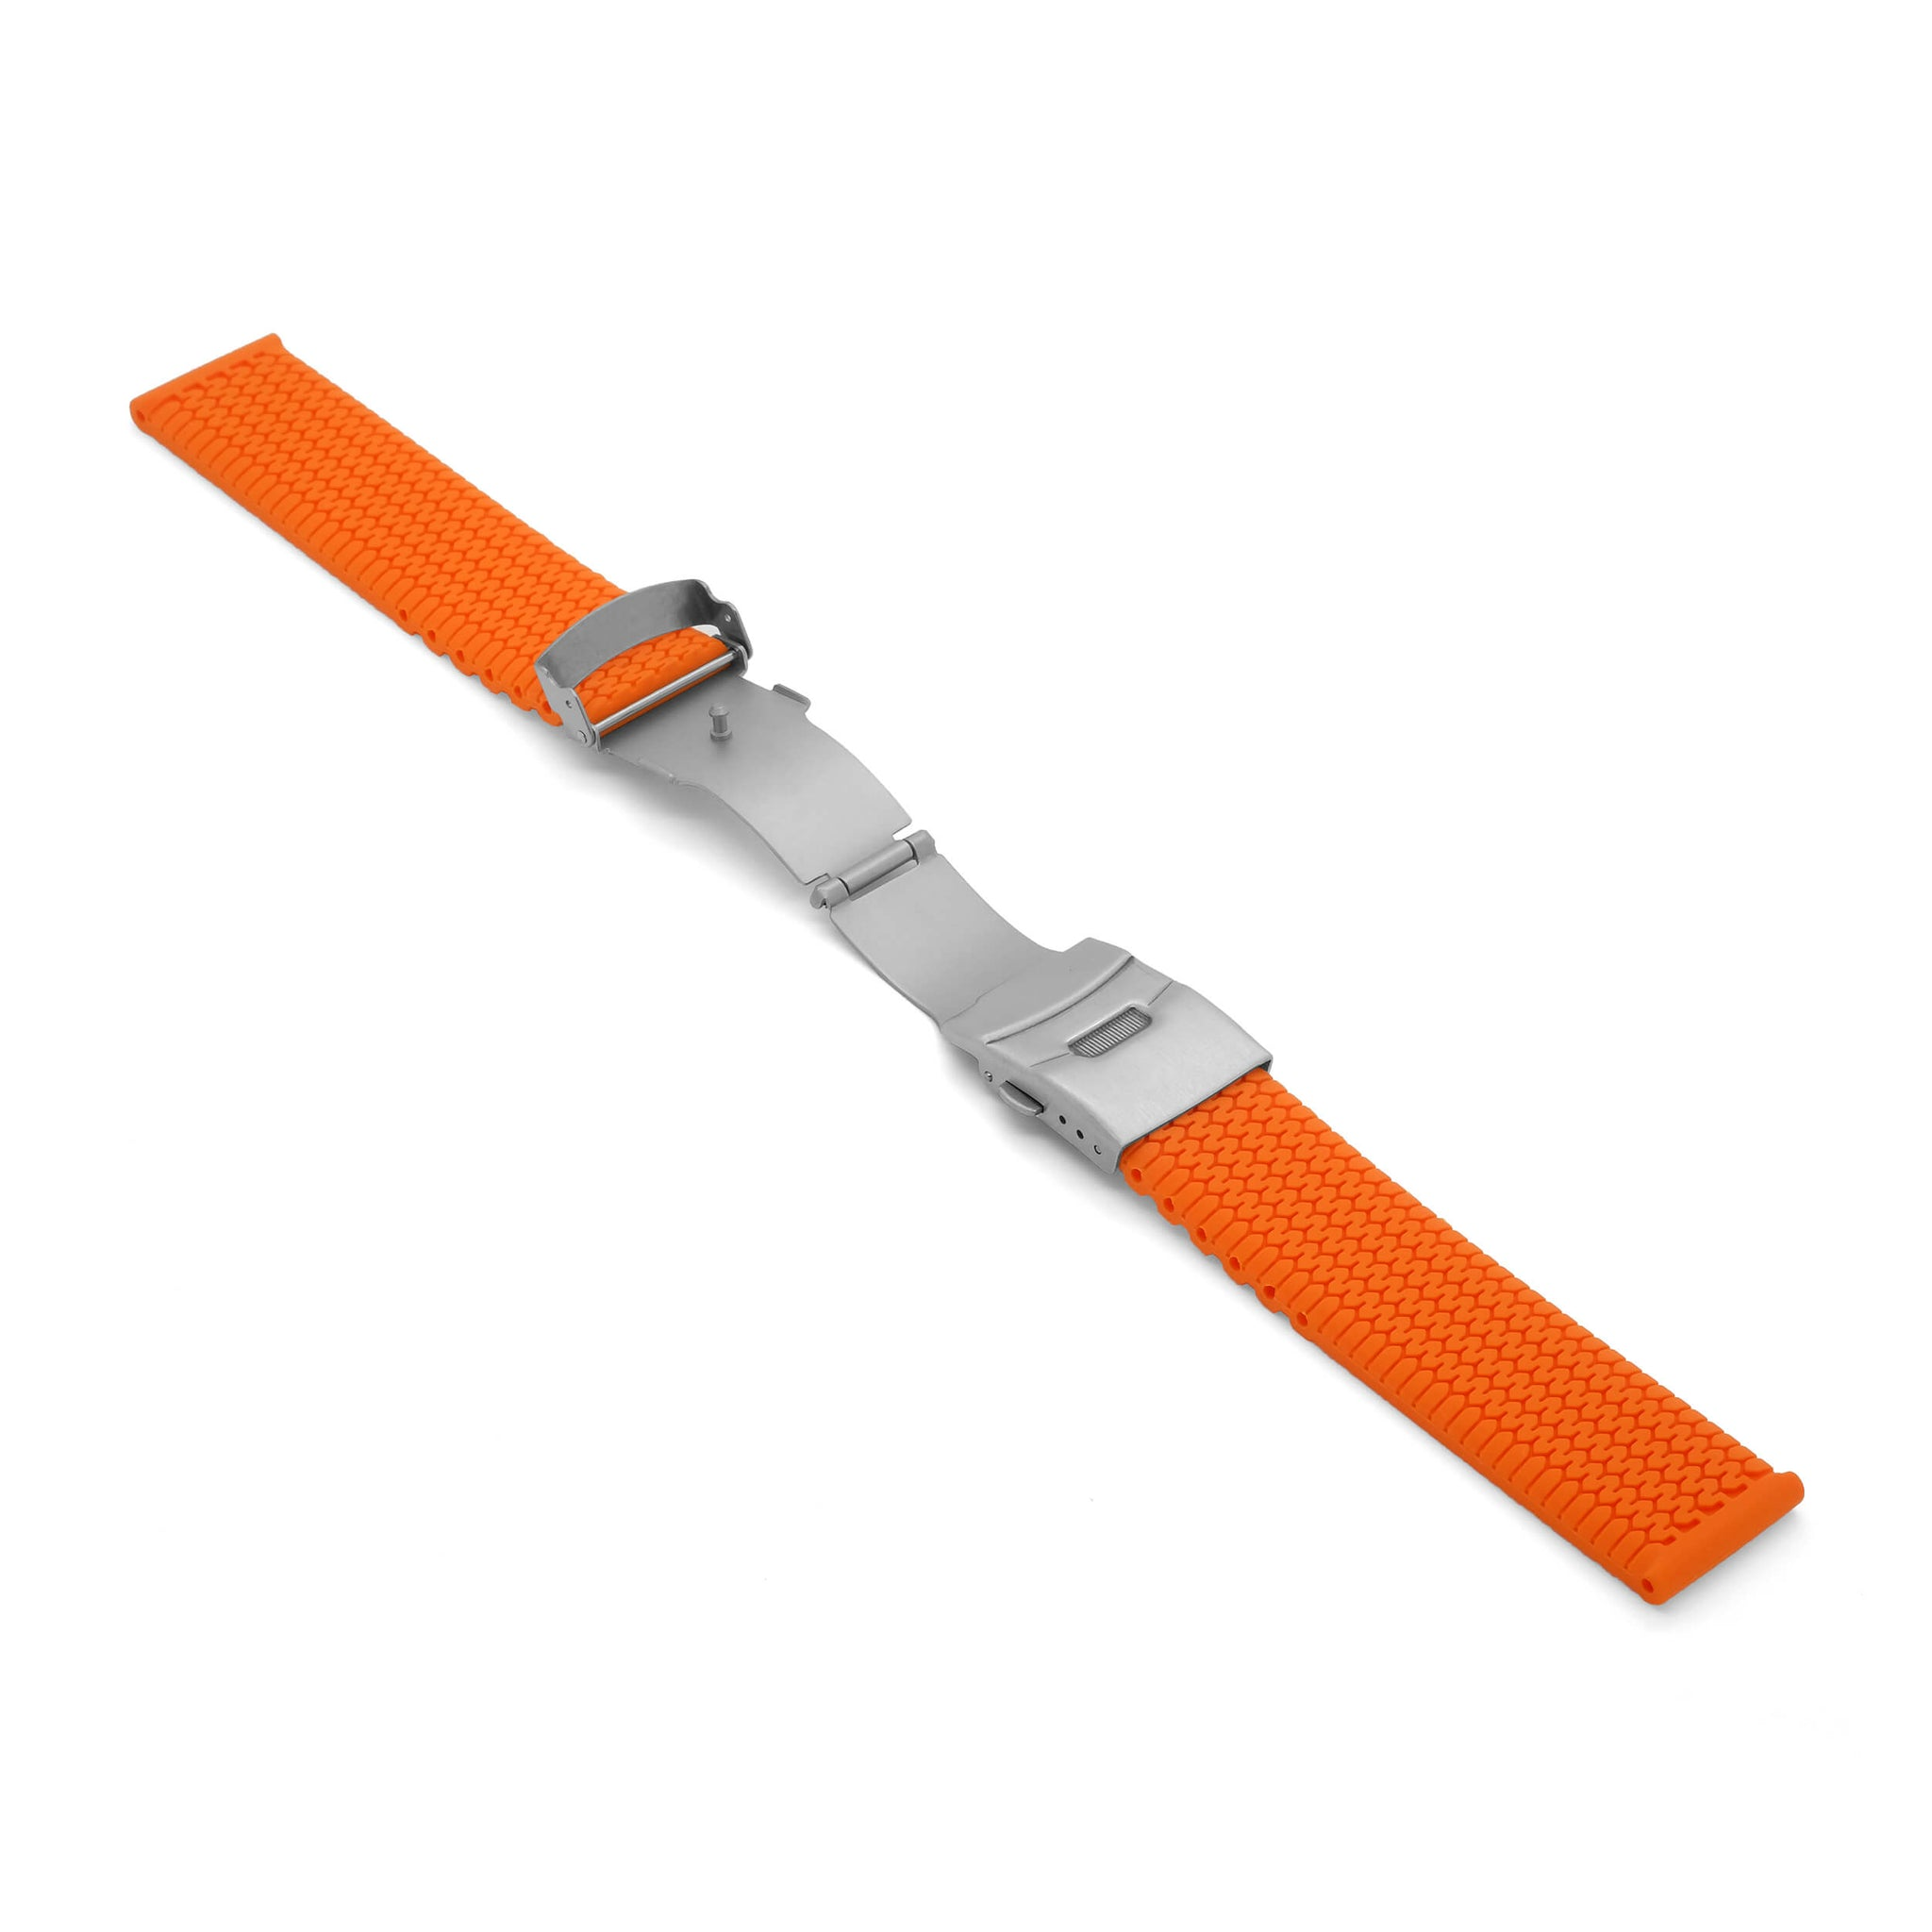 'TT Mk2' Rubber Deployment Watch Strap (Orange)